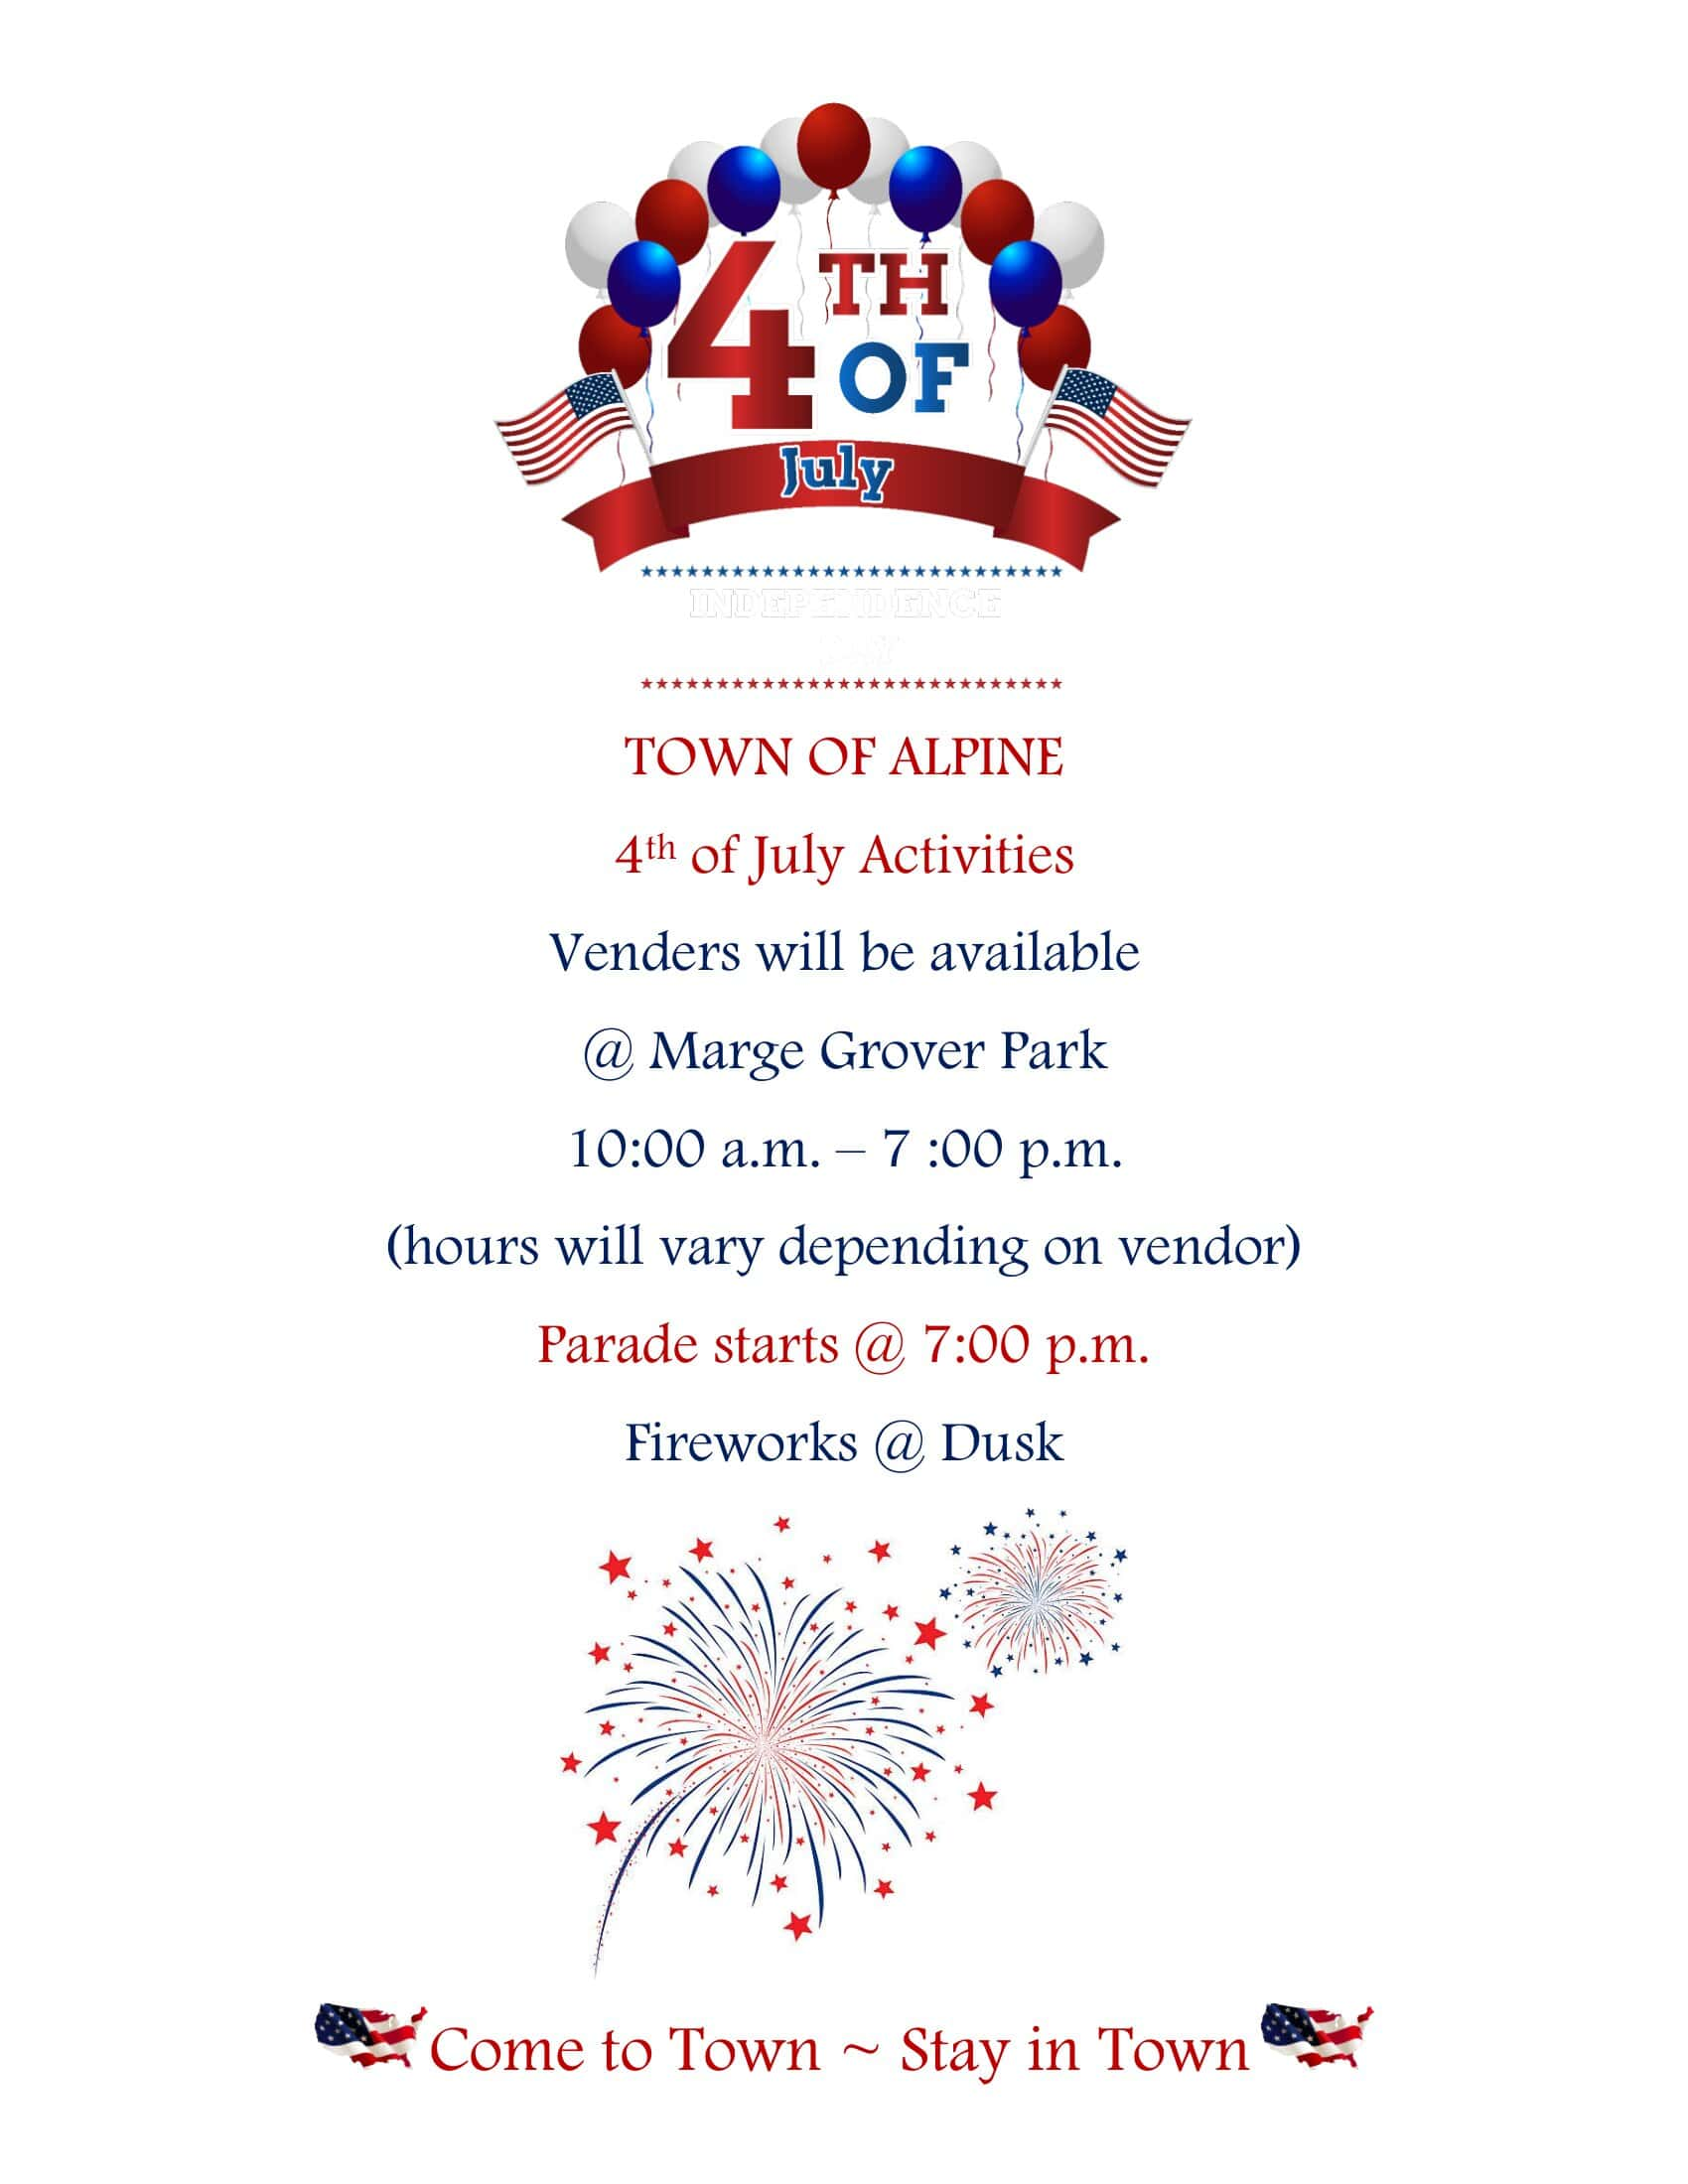 4th of July Events @ Town of Alpine